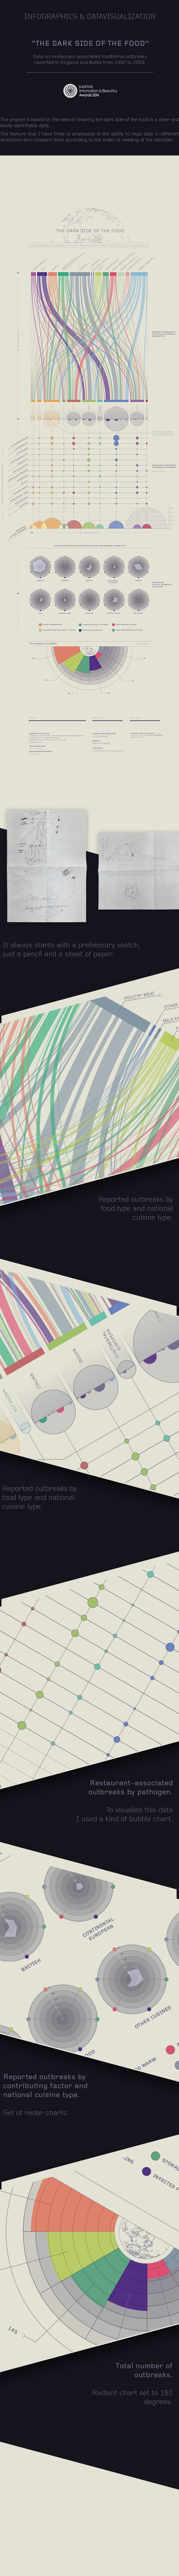 THE DARK SIDE OF THE FOOD - Light Version on Behance